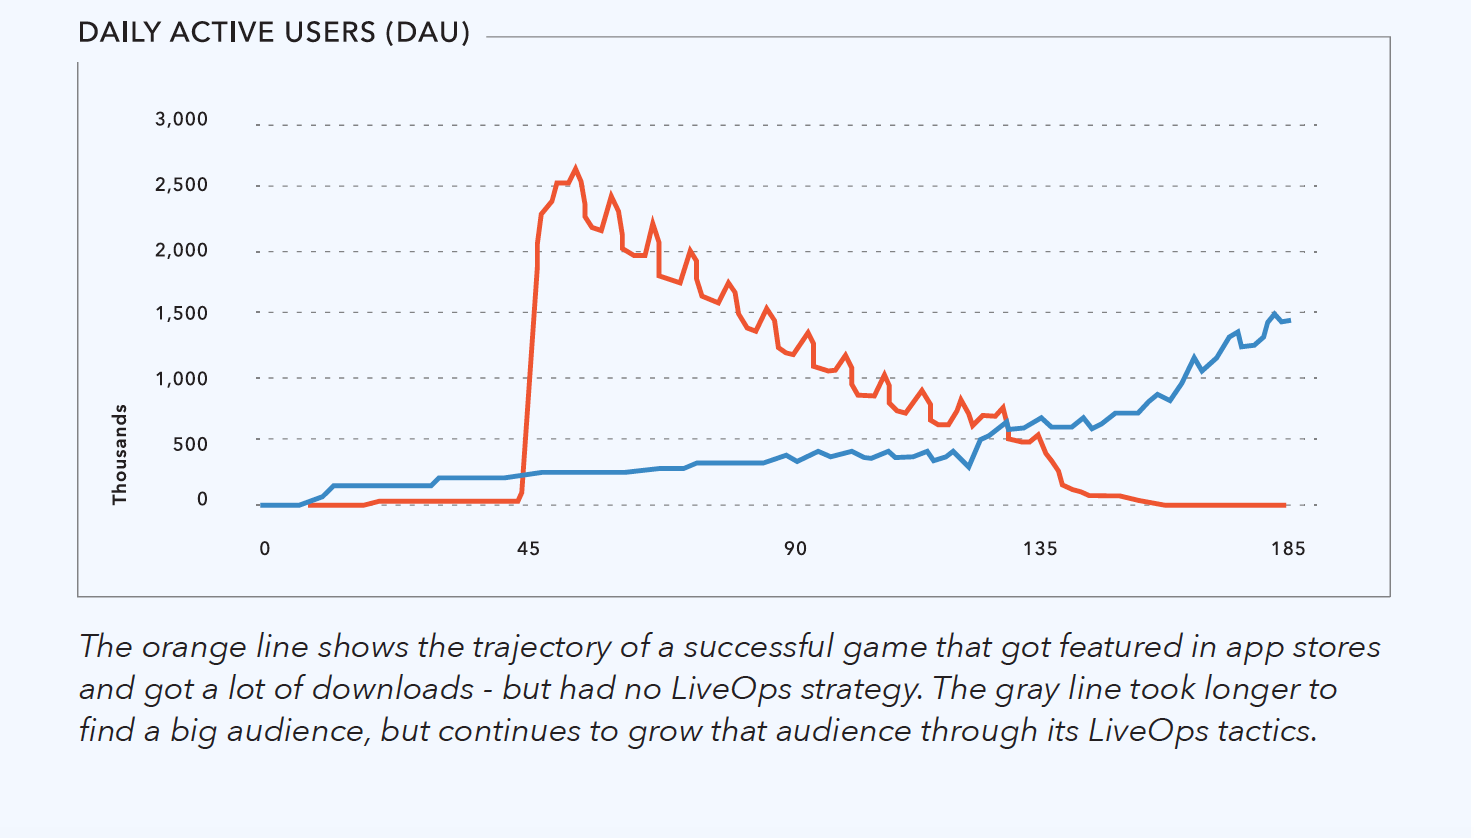 How LiveOps impacts game longevity